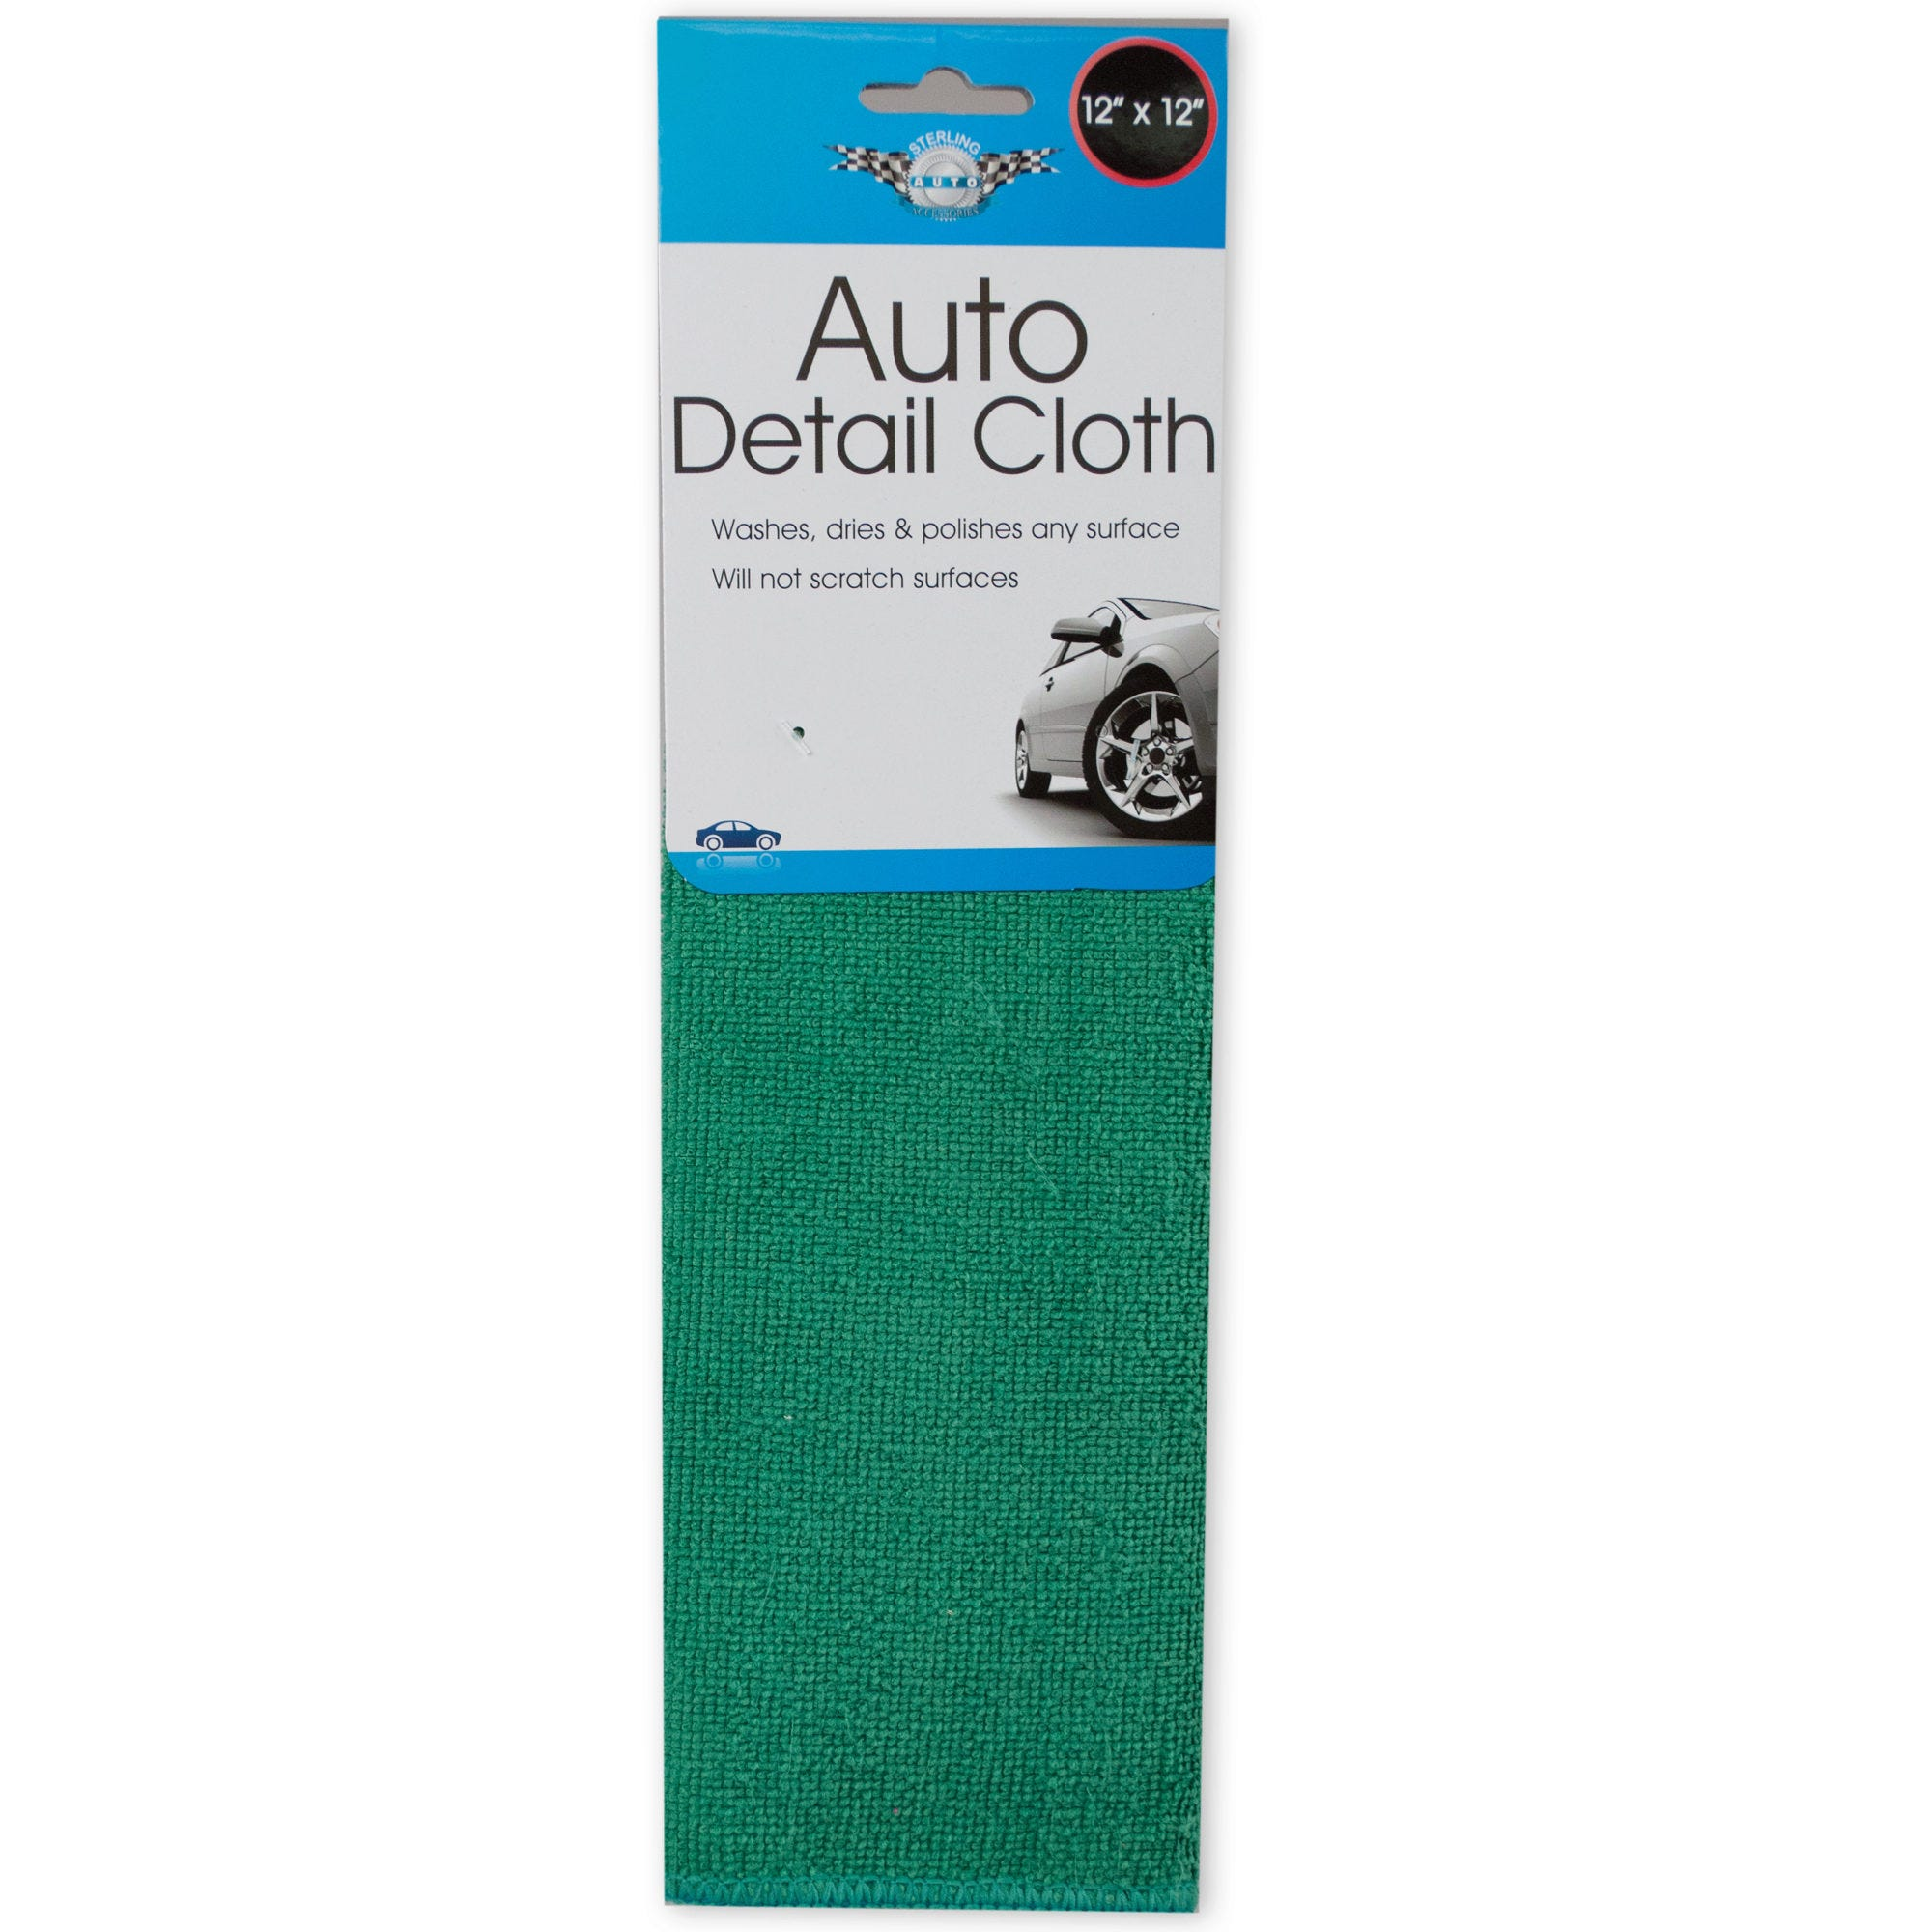 Two-Sided Microfiber Auto Detail Cloth- Qty 24